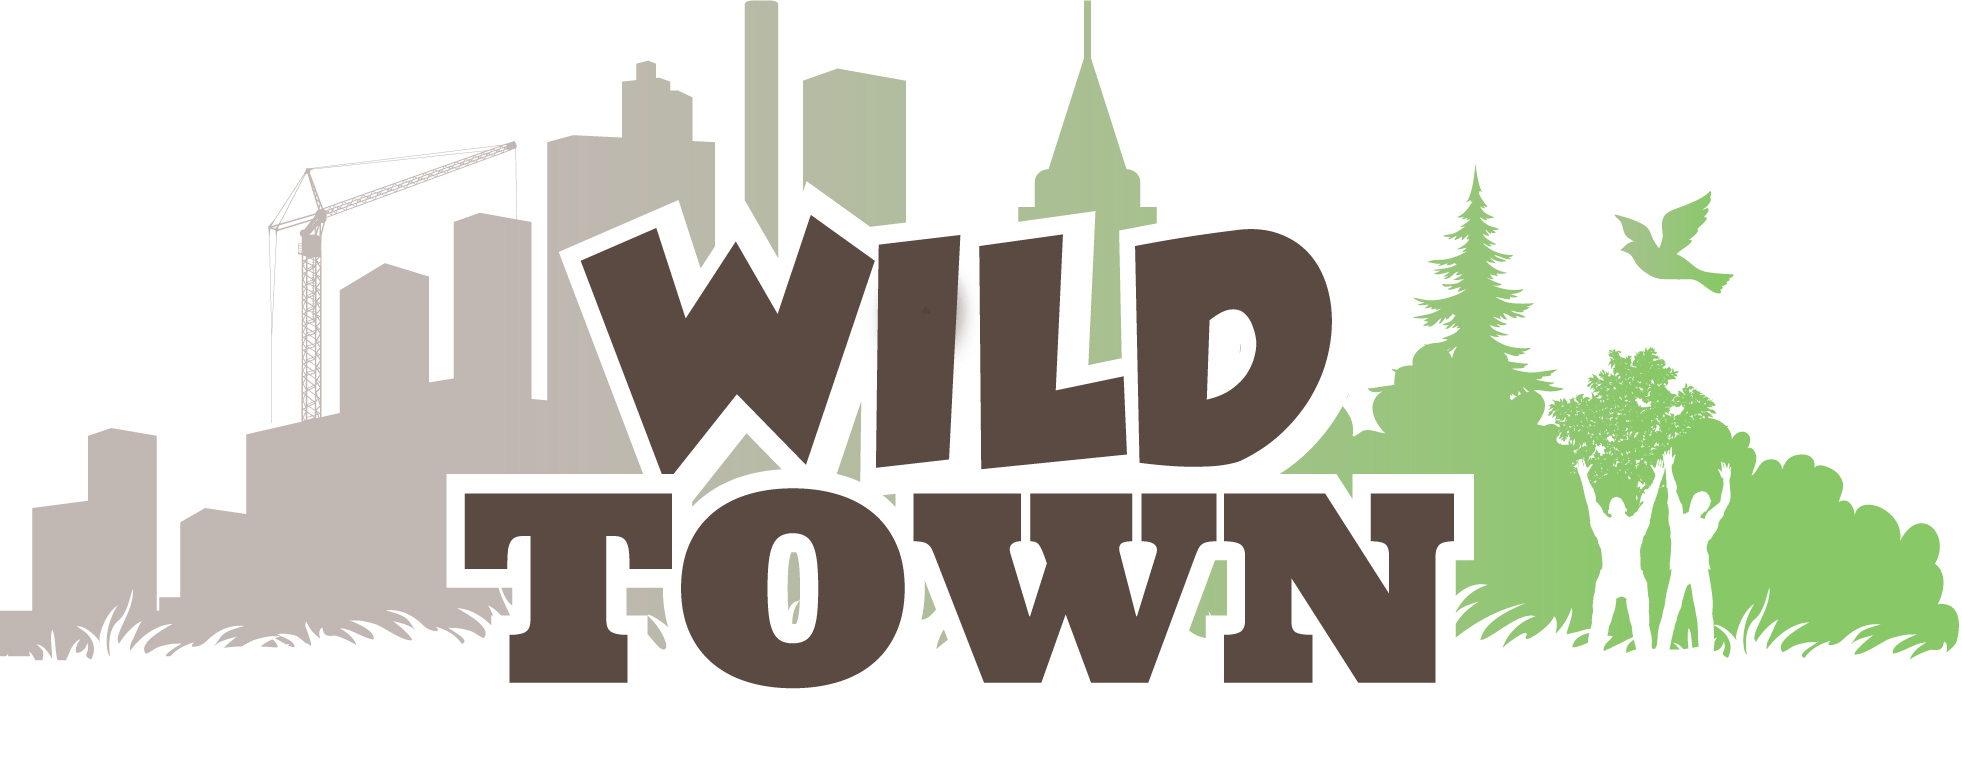 WILD-TOWN-LOGO-colour